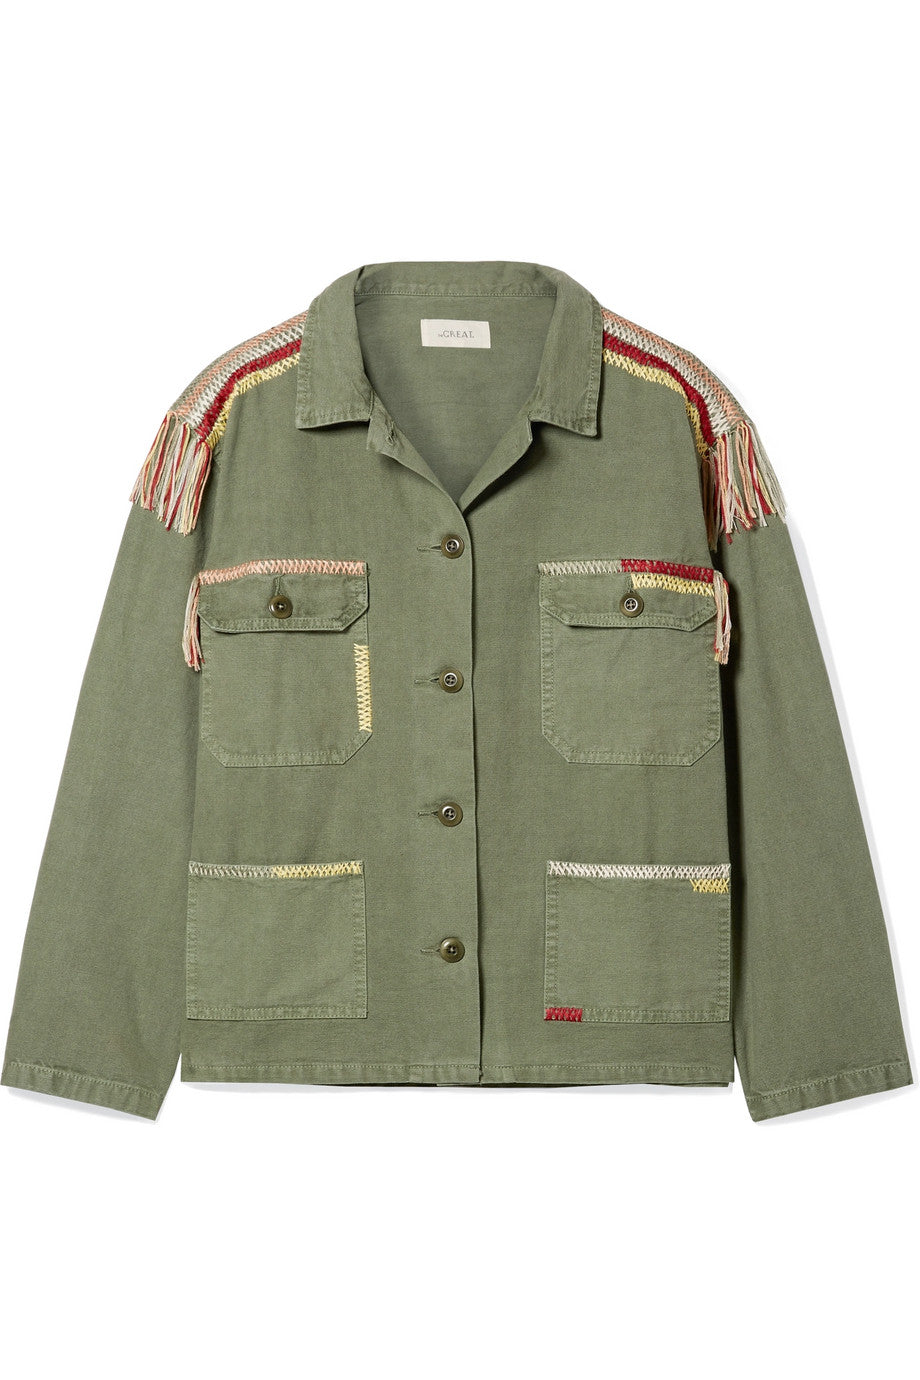 The Great The Sergent Jacket - Army